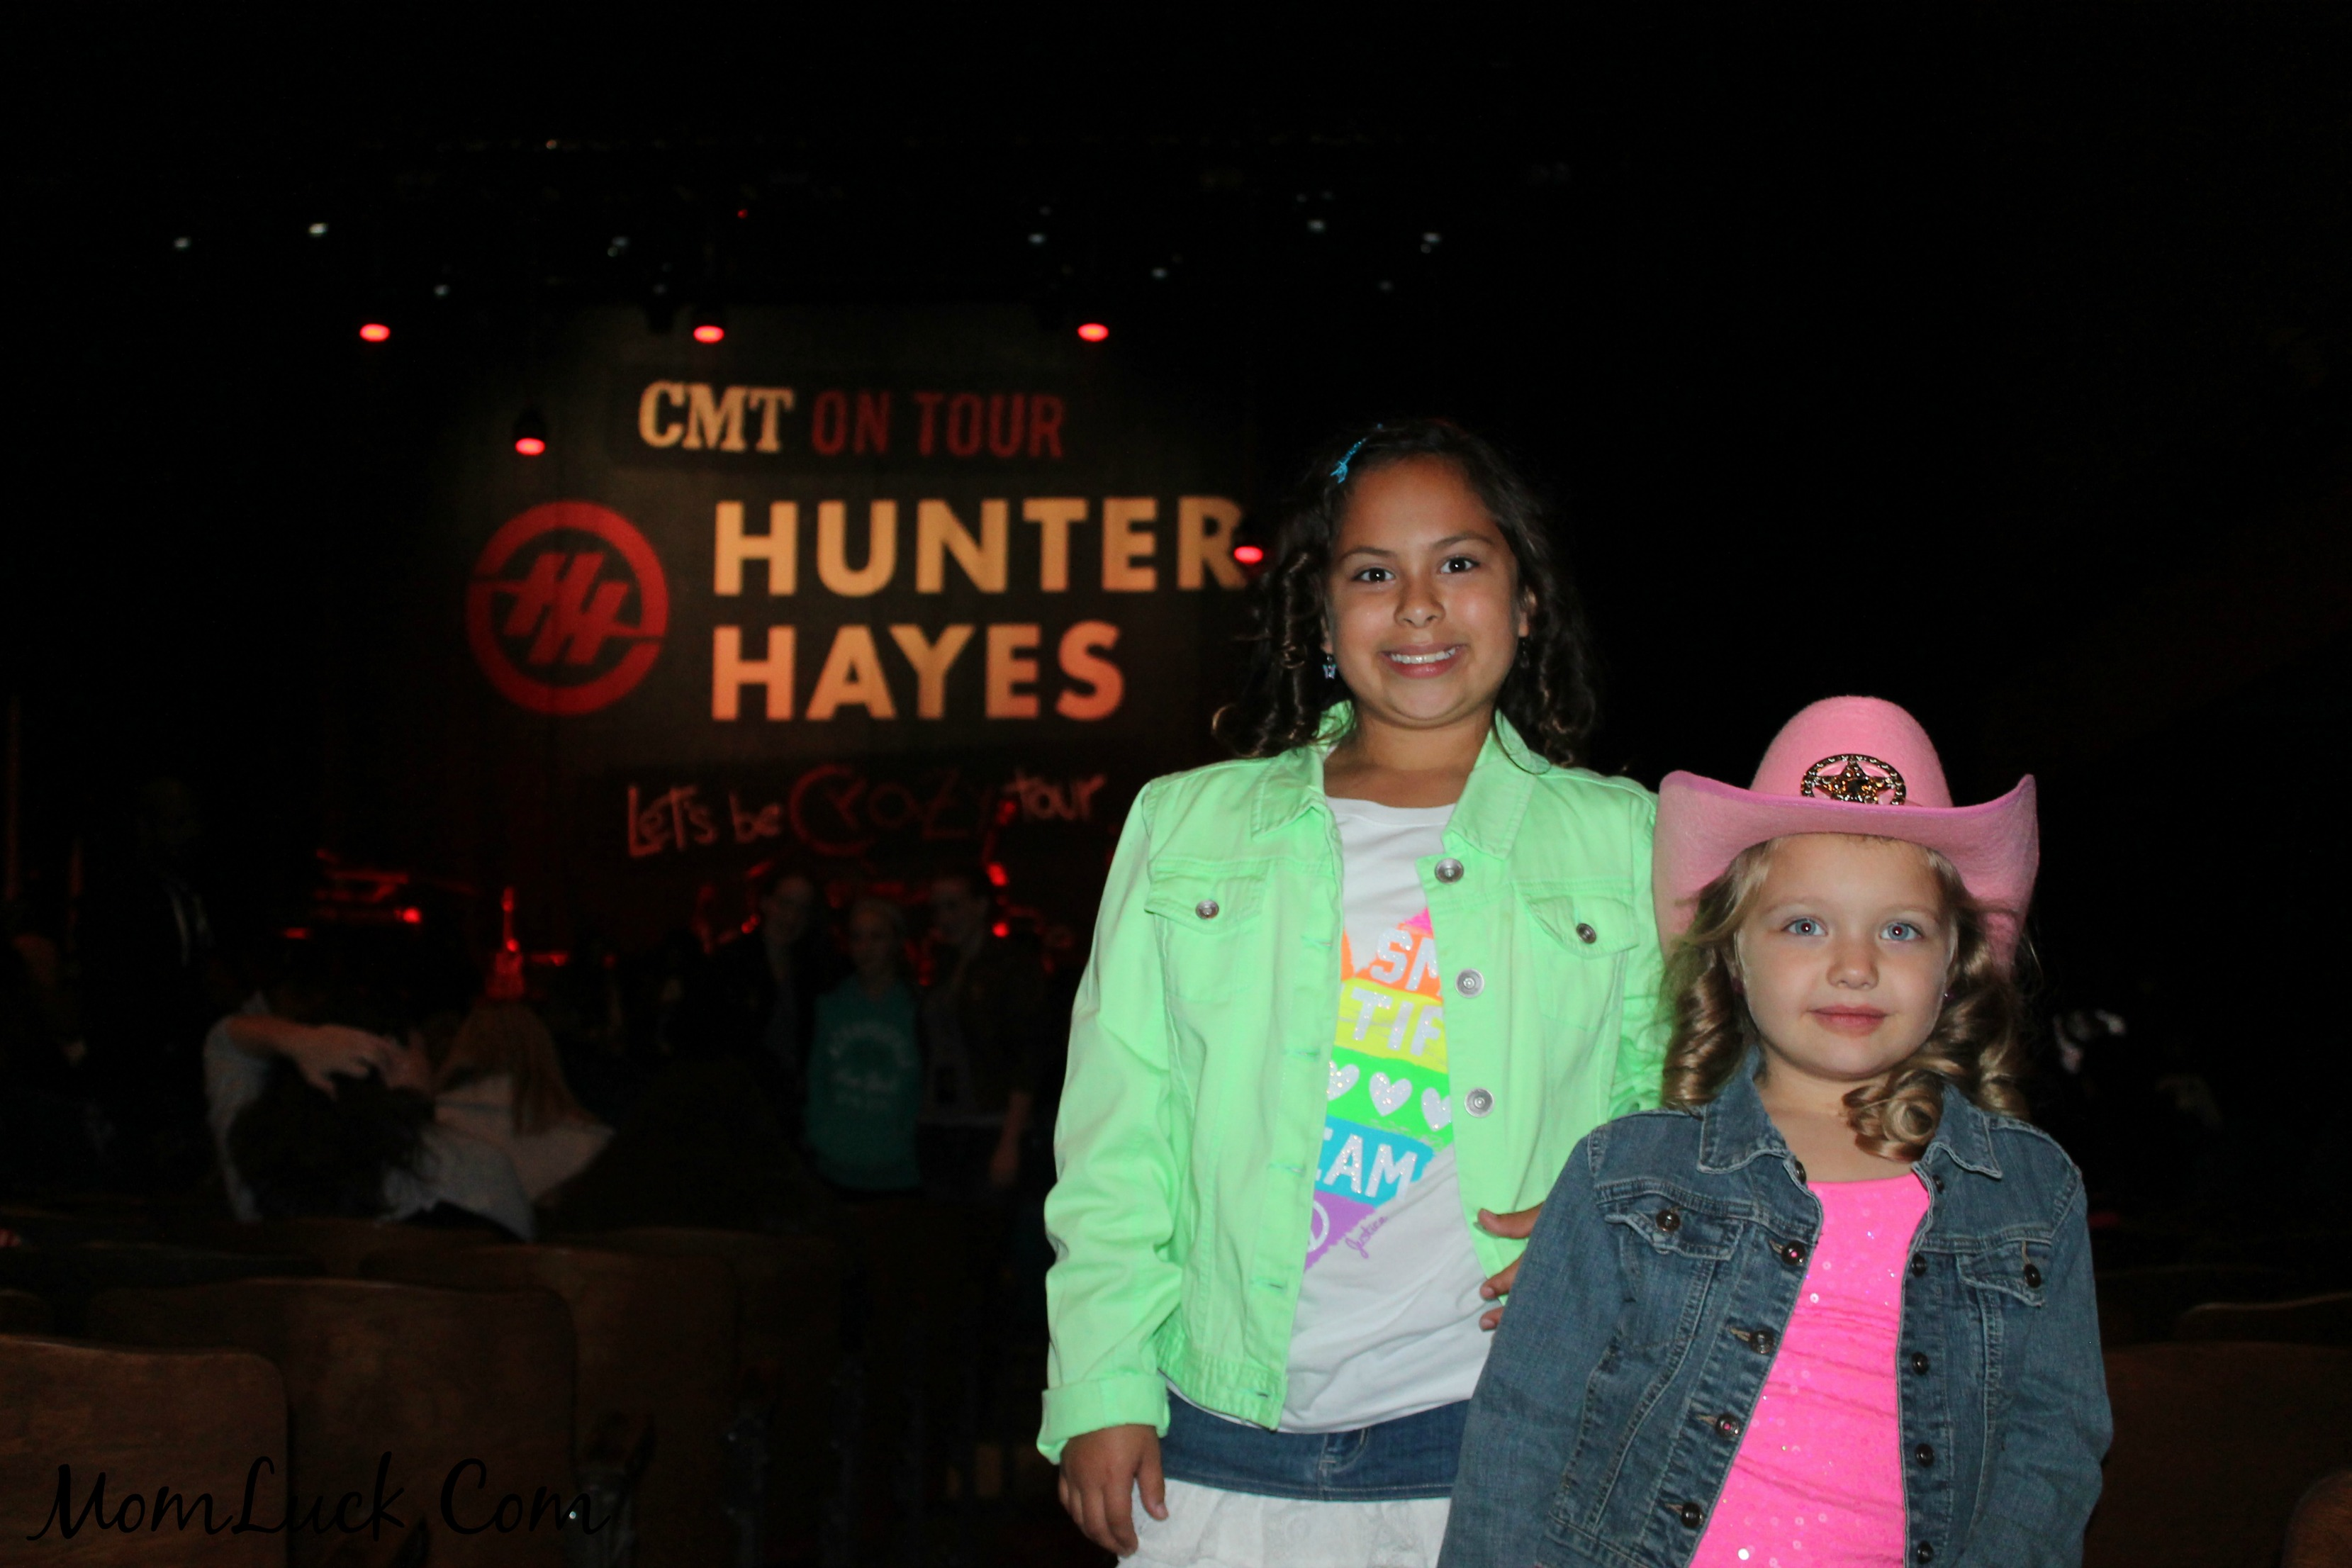 Hunter Hayes Concert Tour